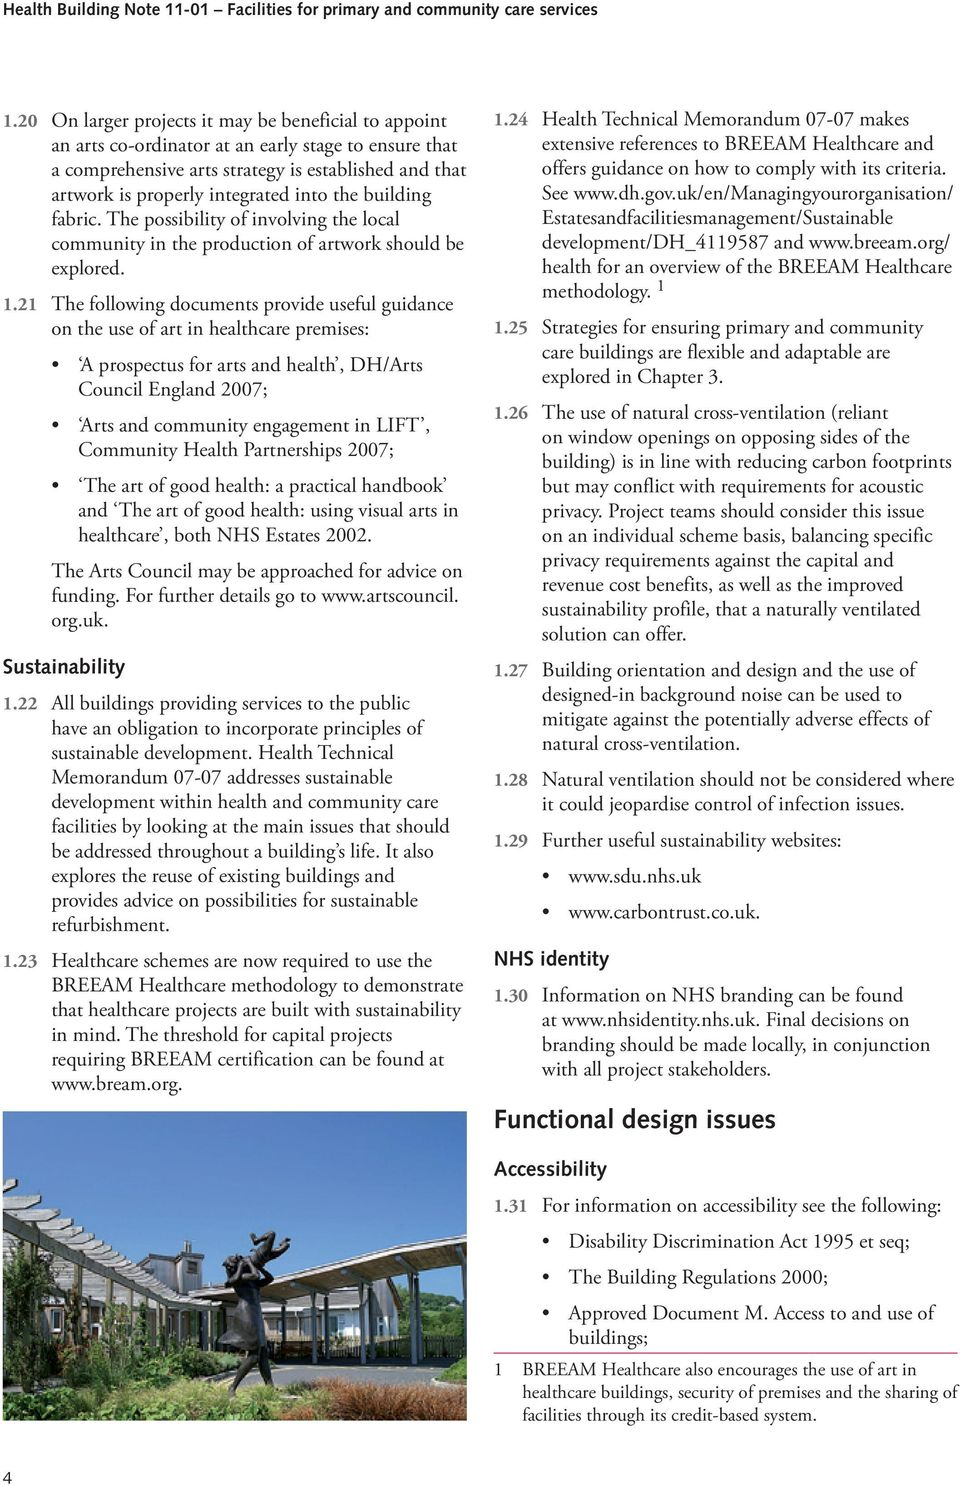 Health Building Note 11-01: Facilities for primary and